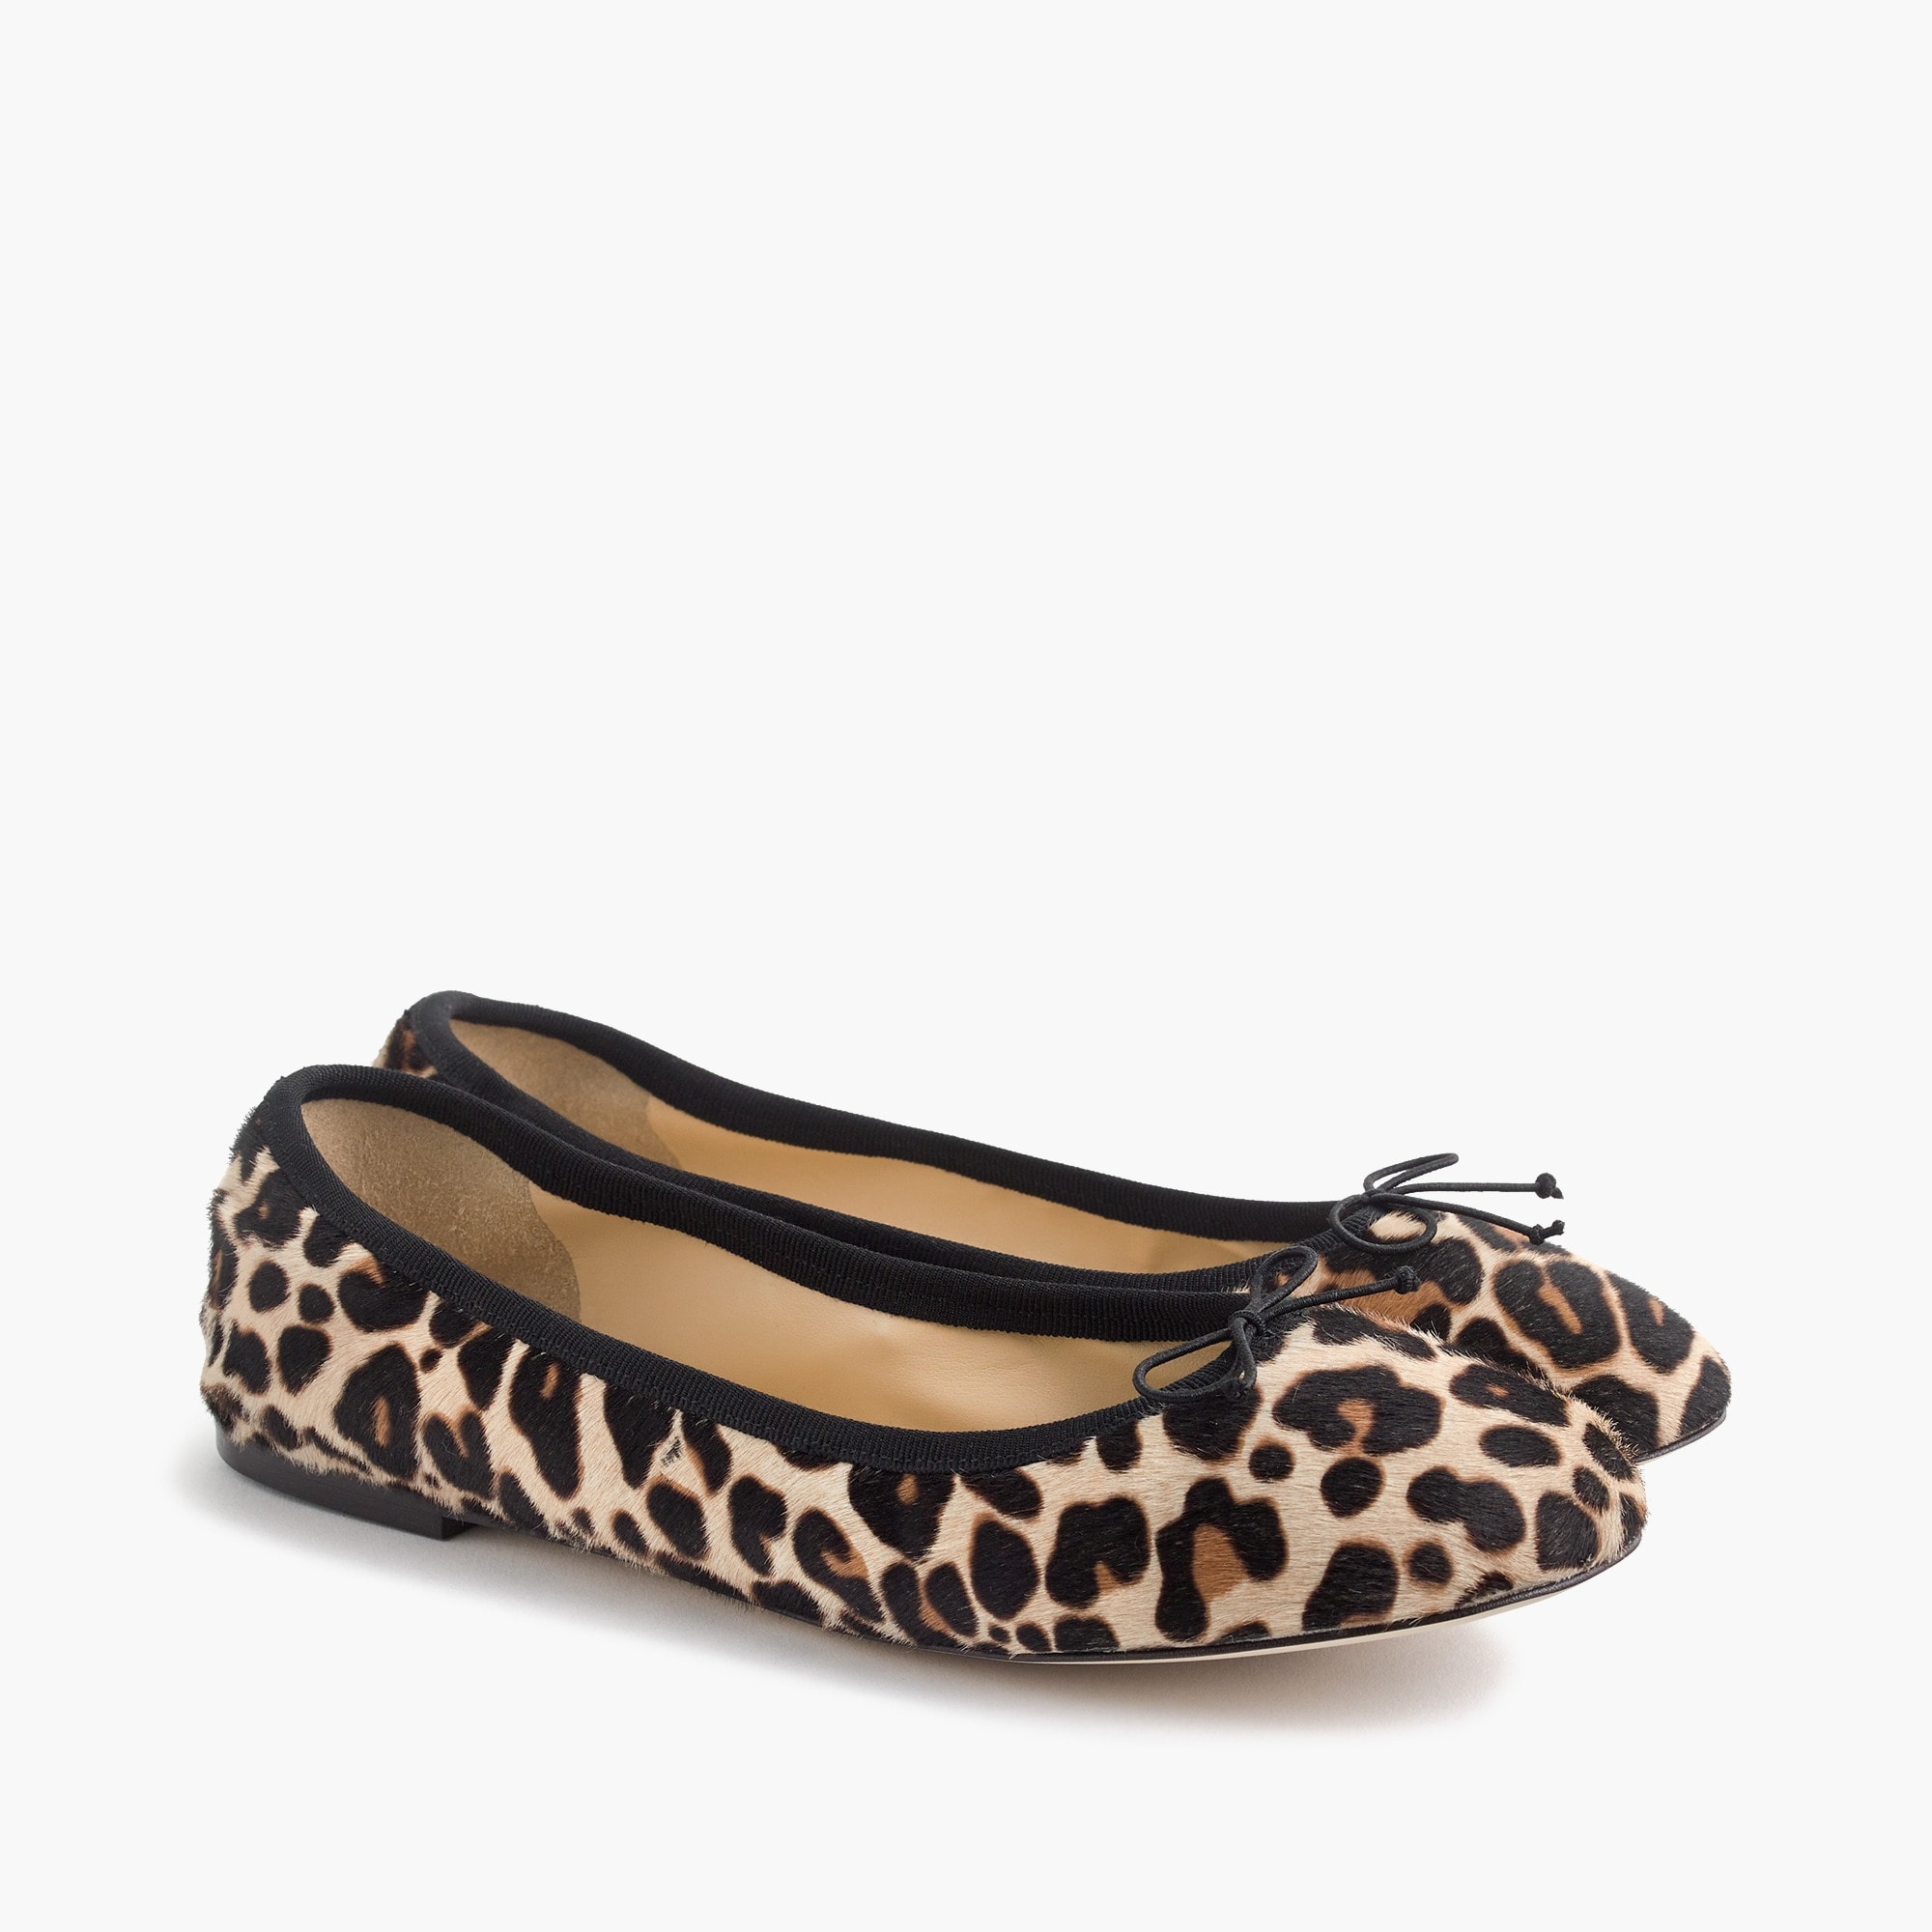 Evie ballet flats in leopard print calf hair women shoes c